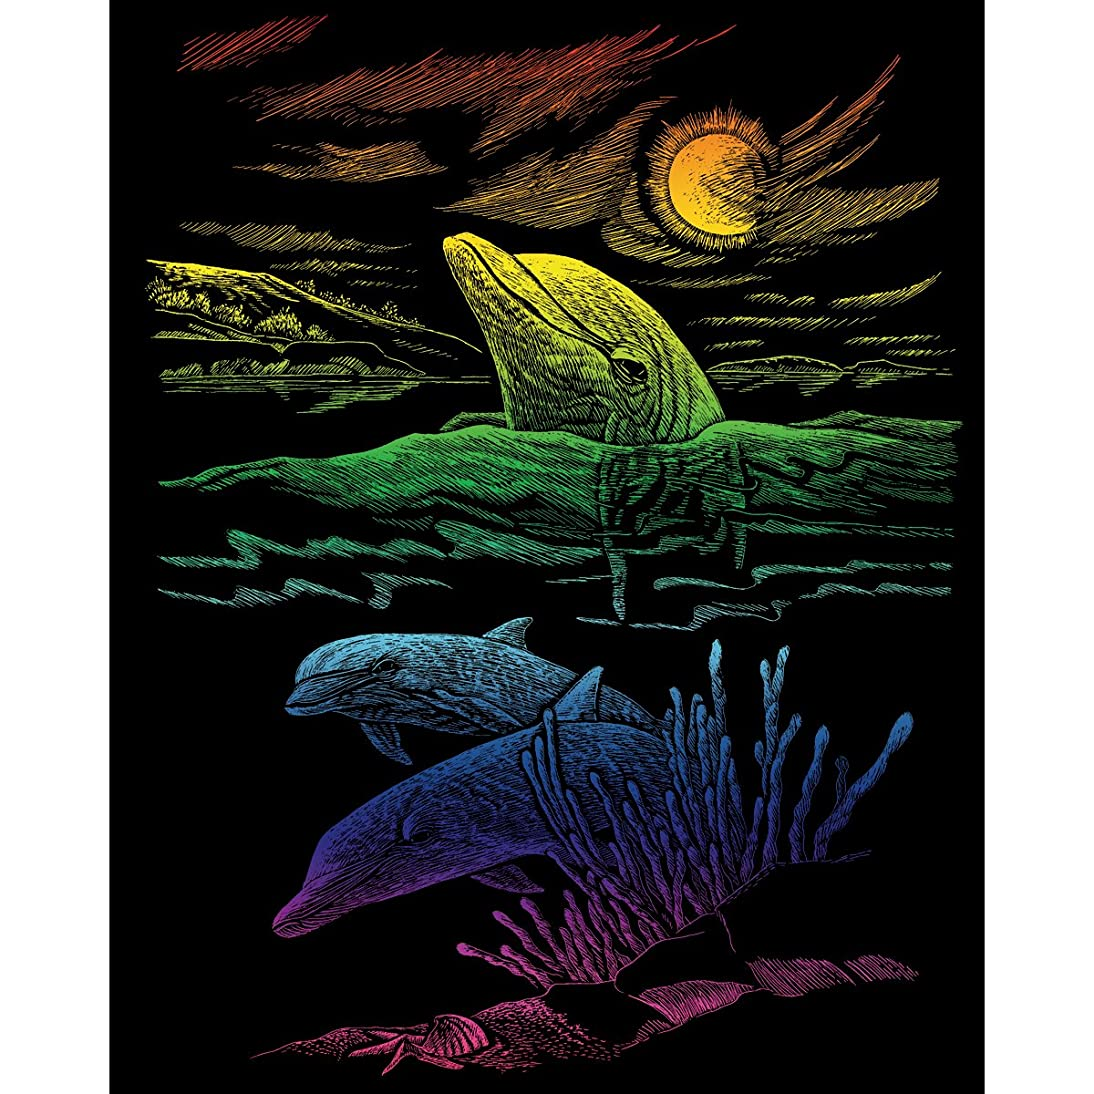 ROYAL BRUSH Rainbow Foil Engraving Art Kit, 8-Inch by 10-Inch, Dolphin Reef